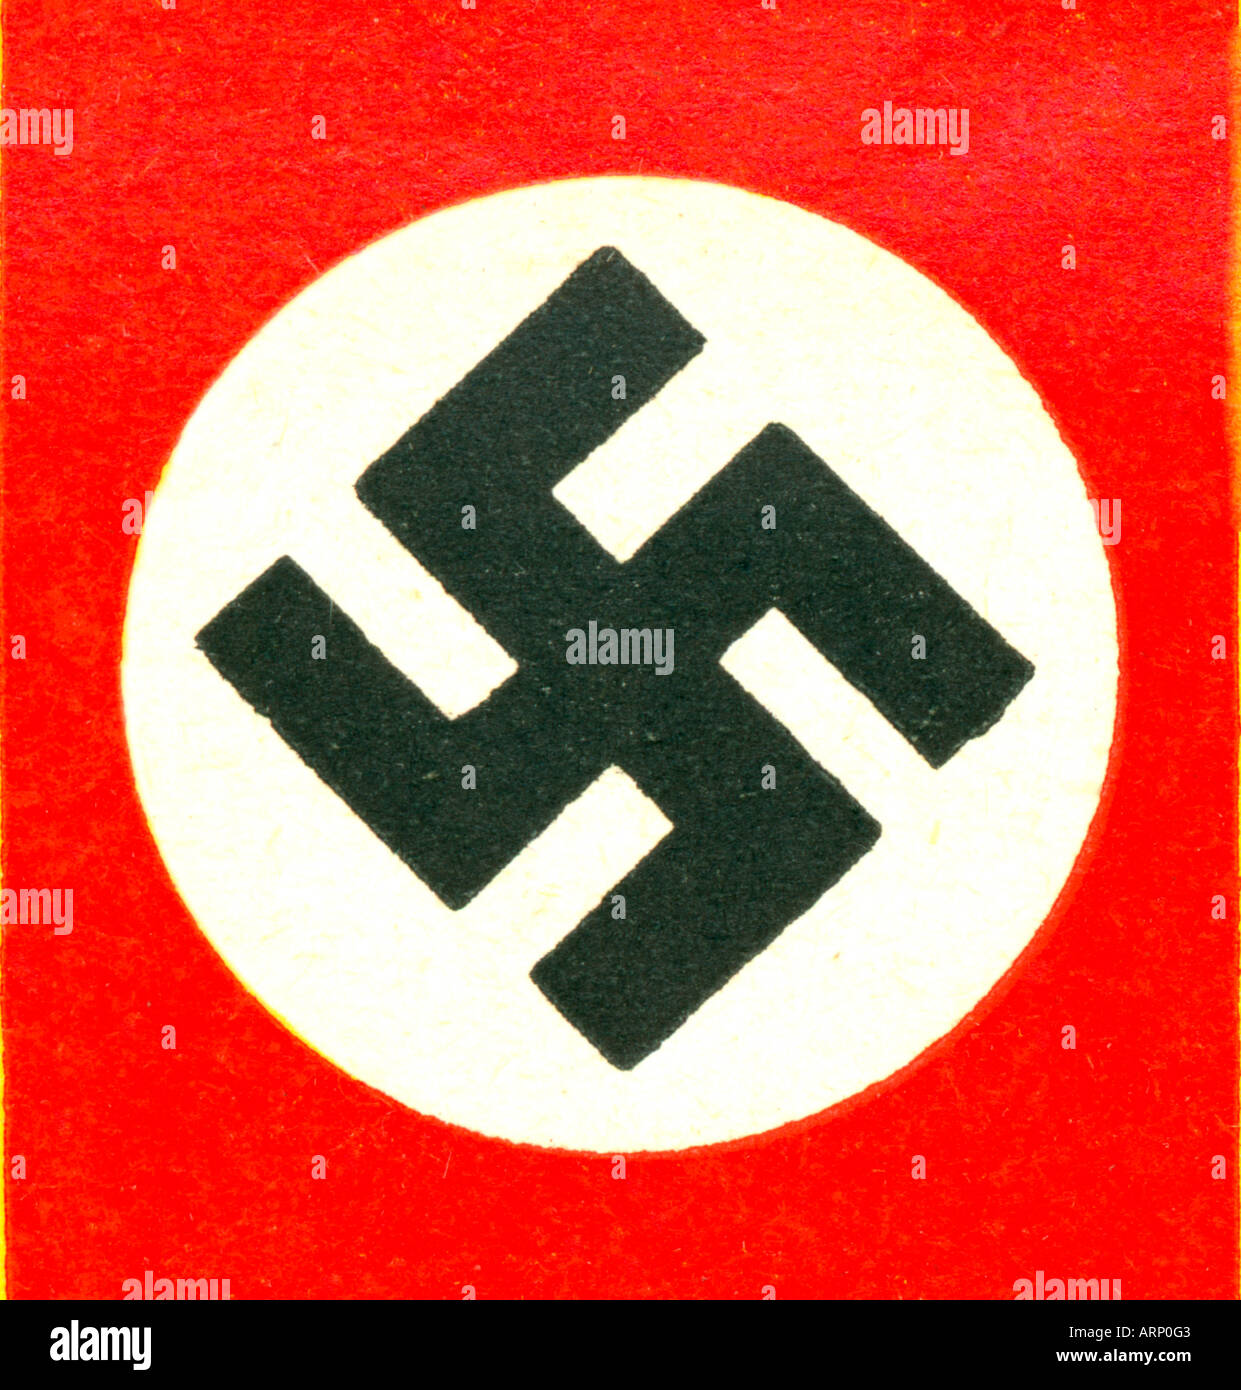 Swastika The Symbol Of The Nazi Party In Germany Stock Photo